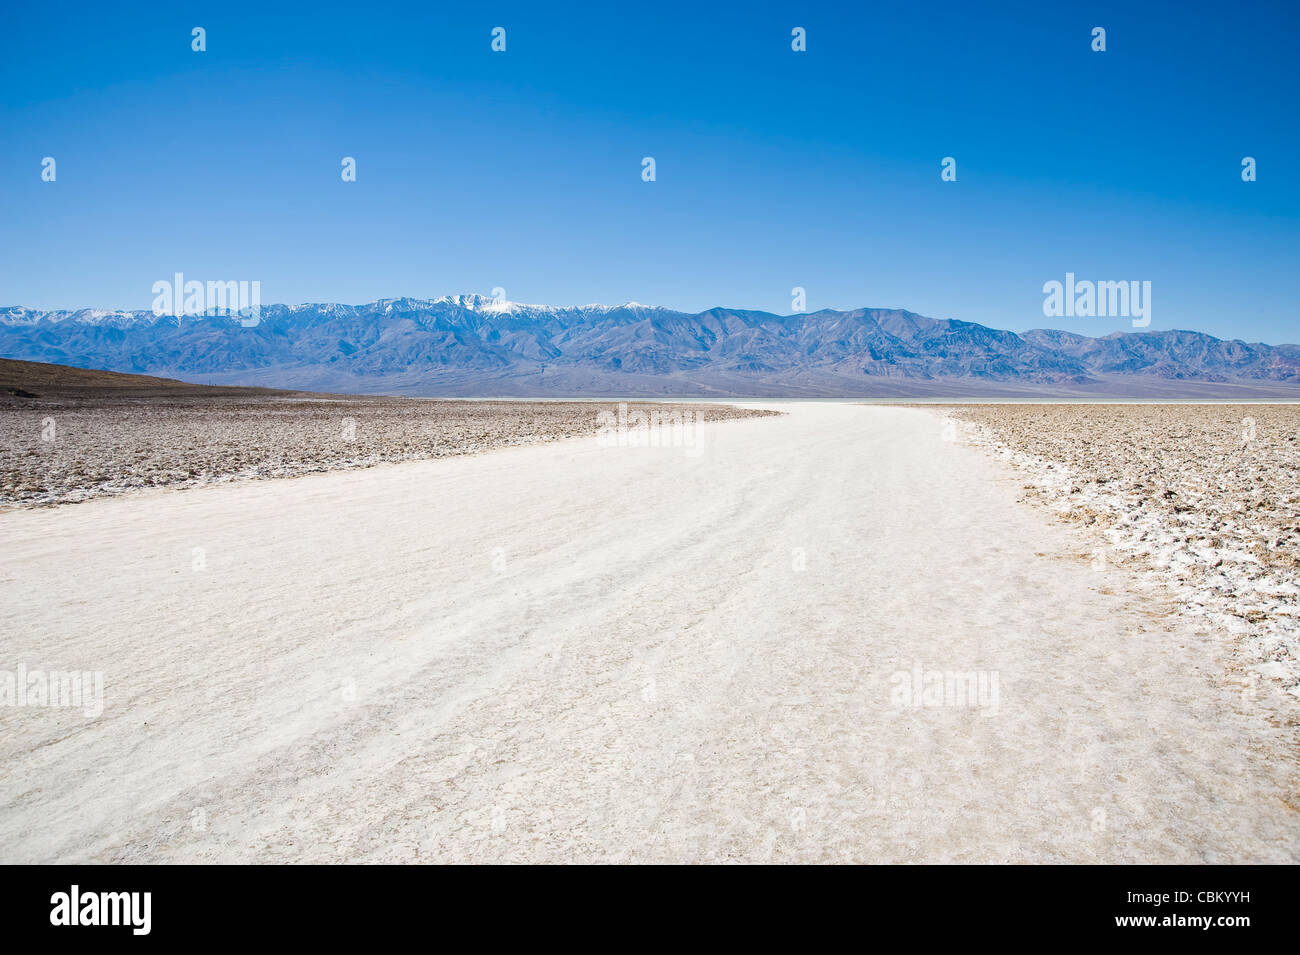 Badwater Basin, Death Valley National Park, USA - Stock Image